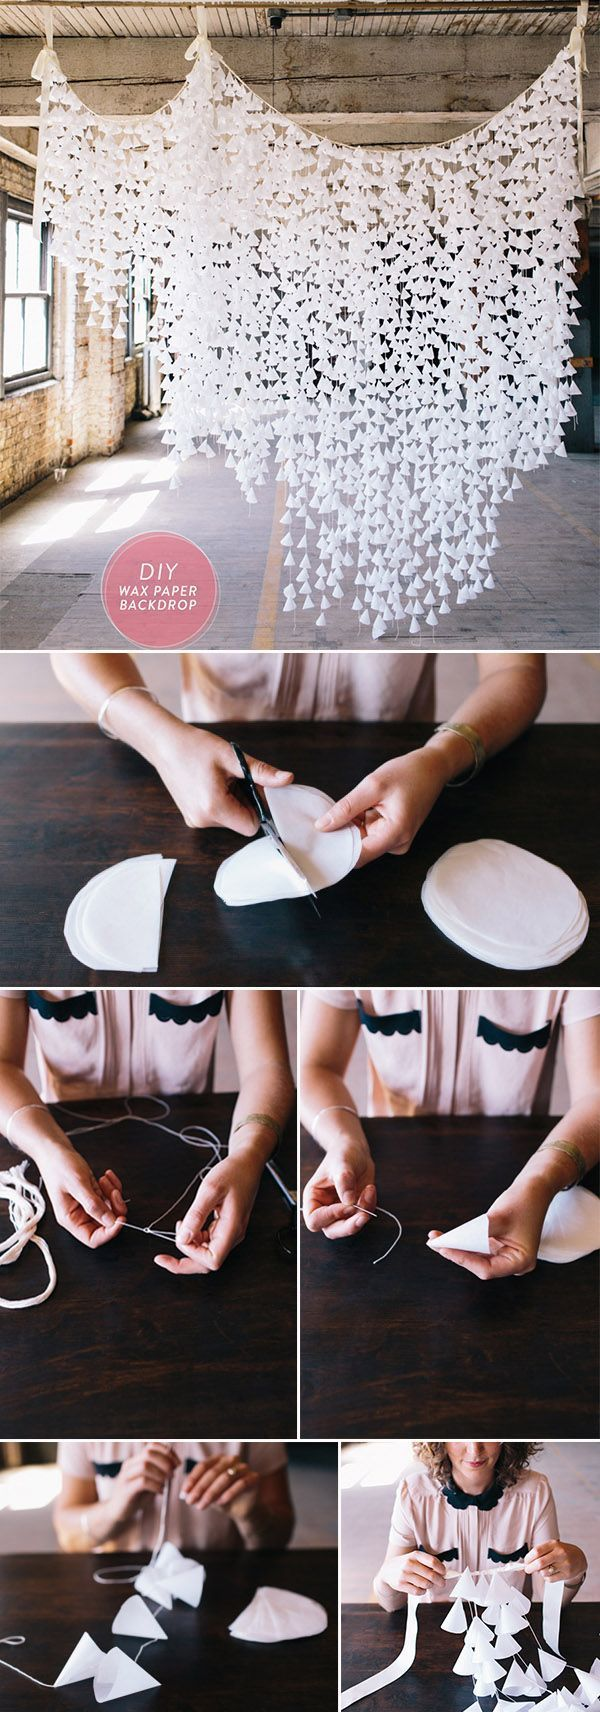 Easy and Beautiful DIY Hanging Decorations